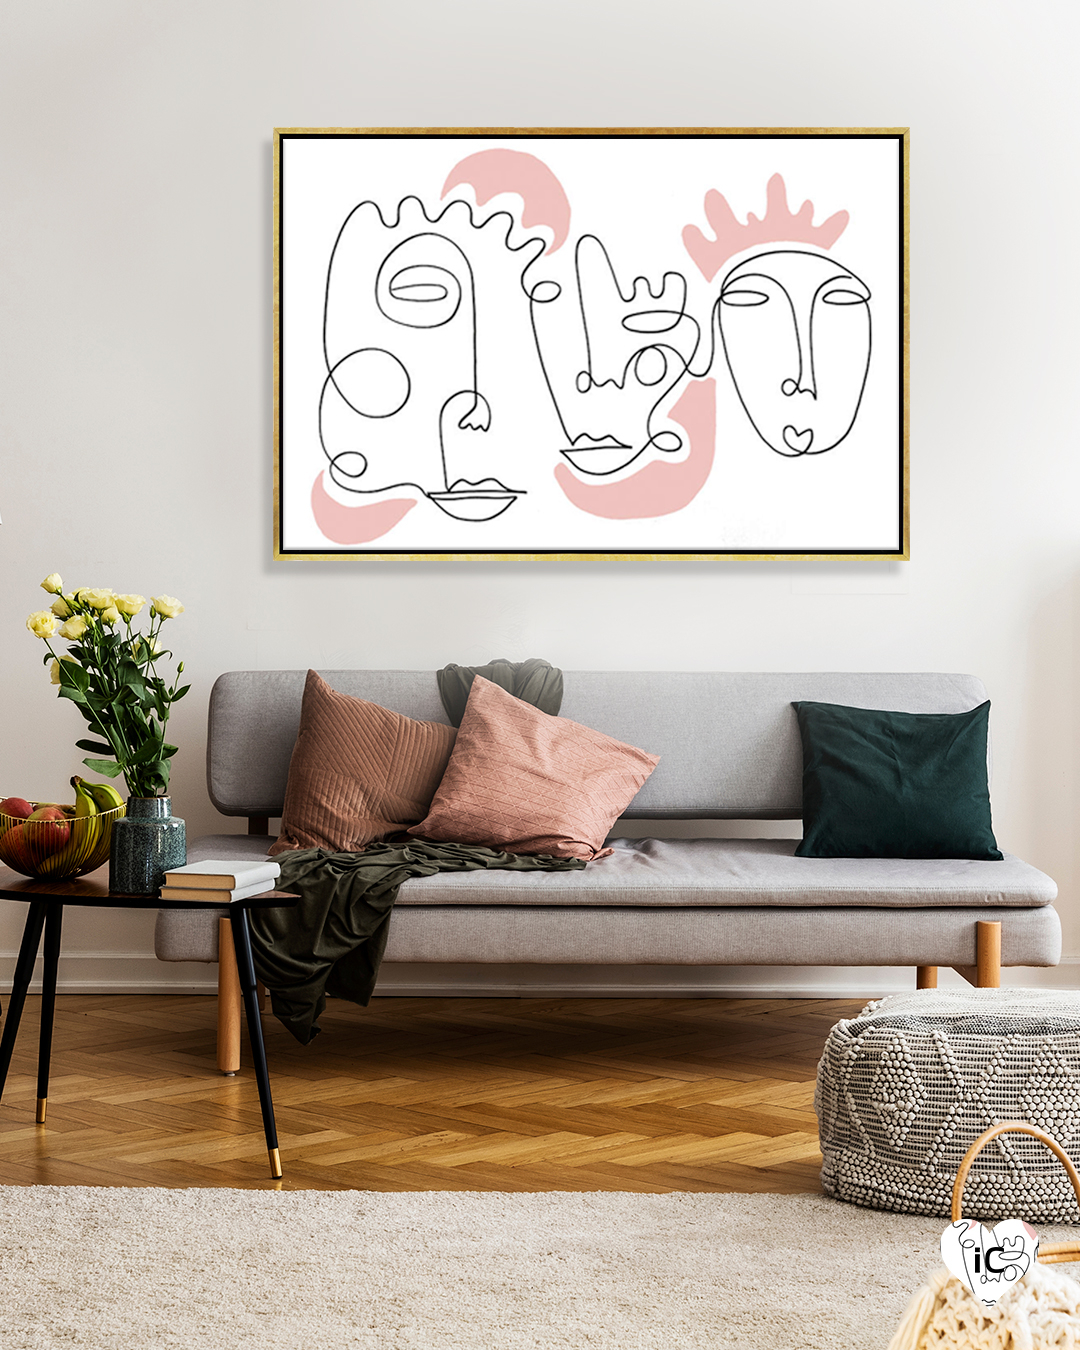 Minimalist line illustration of three portraits with pink shapes around them in a gold frame on a wall in a room with a gray couch and pink and green throw pillows